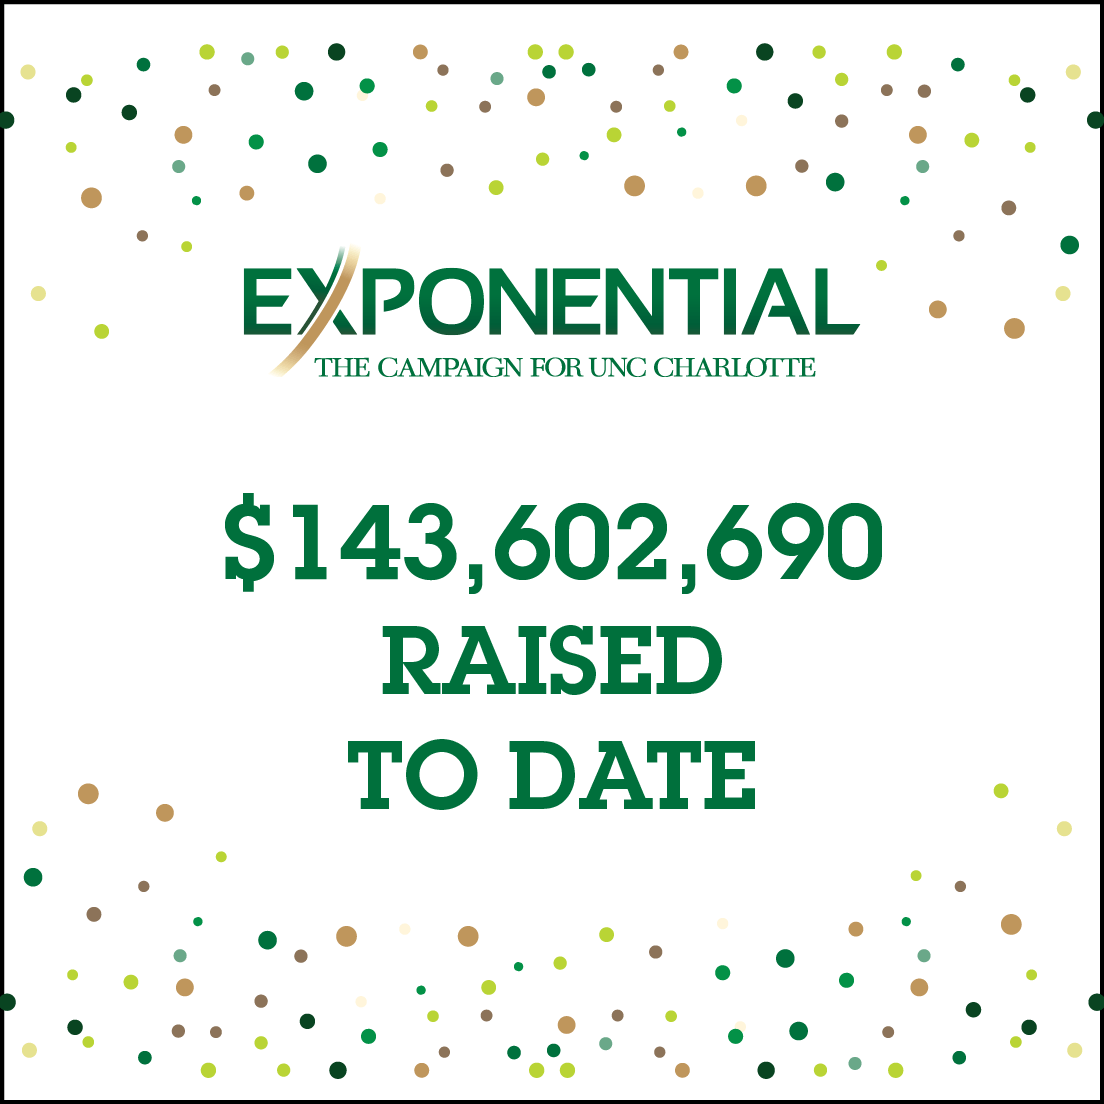 Exponential: The Campaign for UNC Charlotte  $143,602,690 raised to date